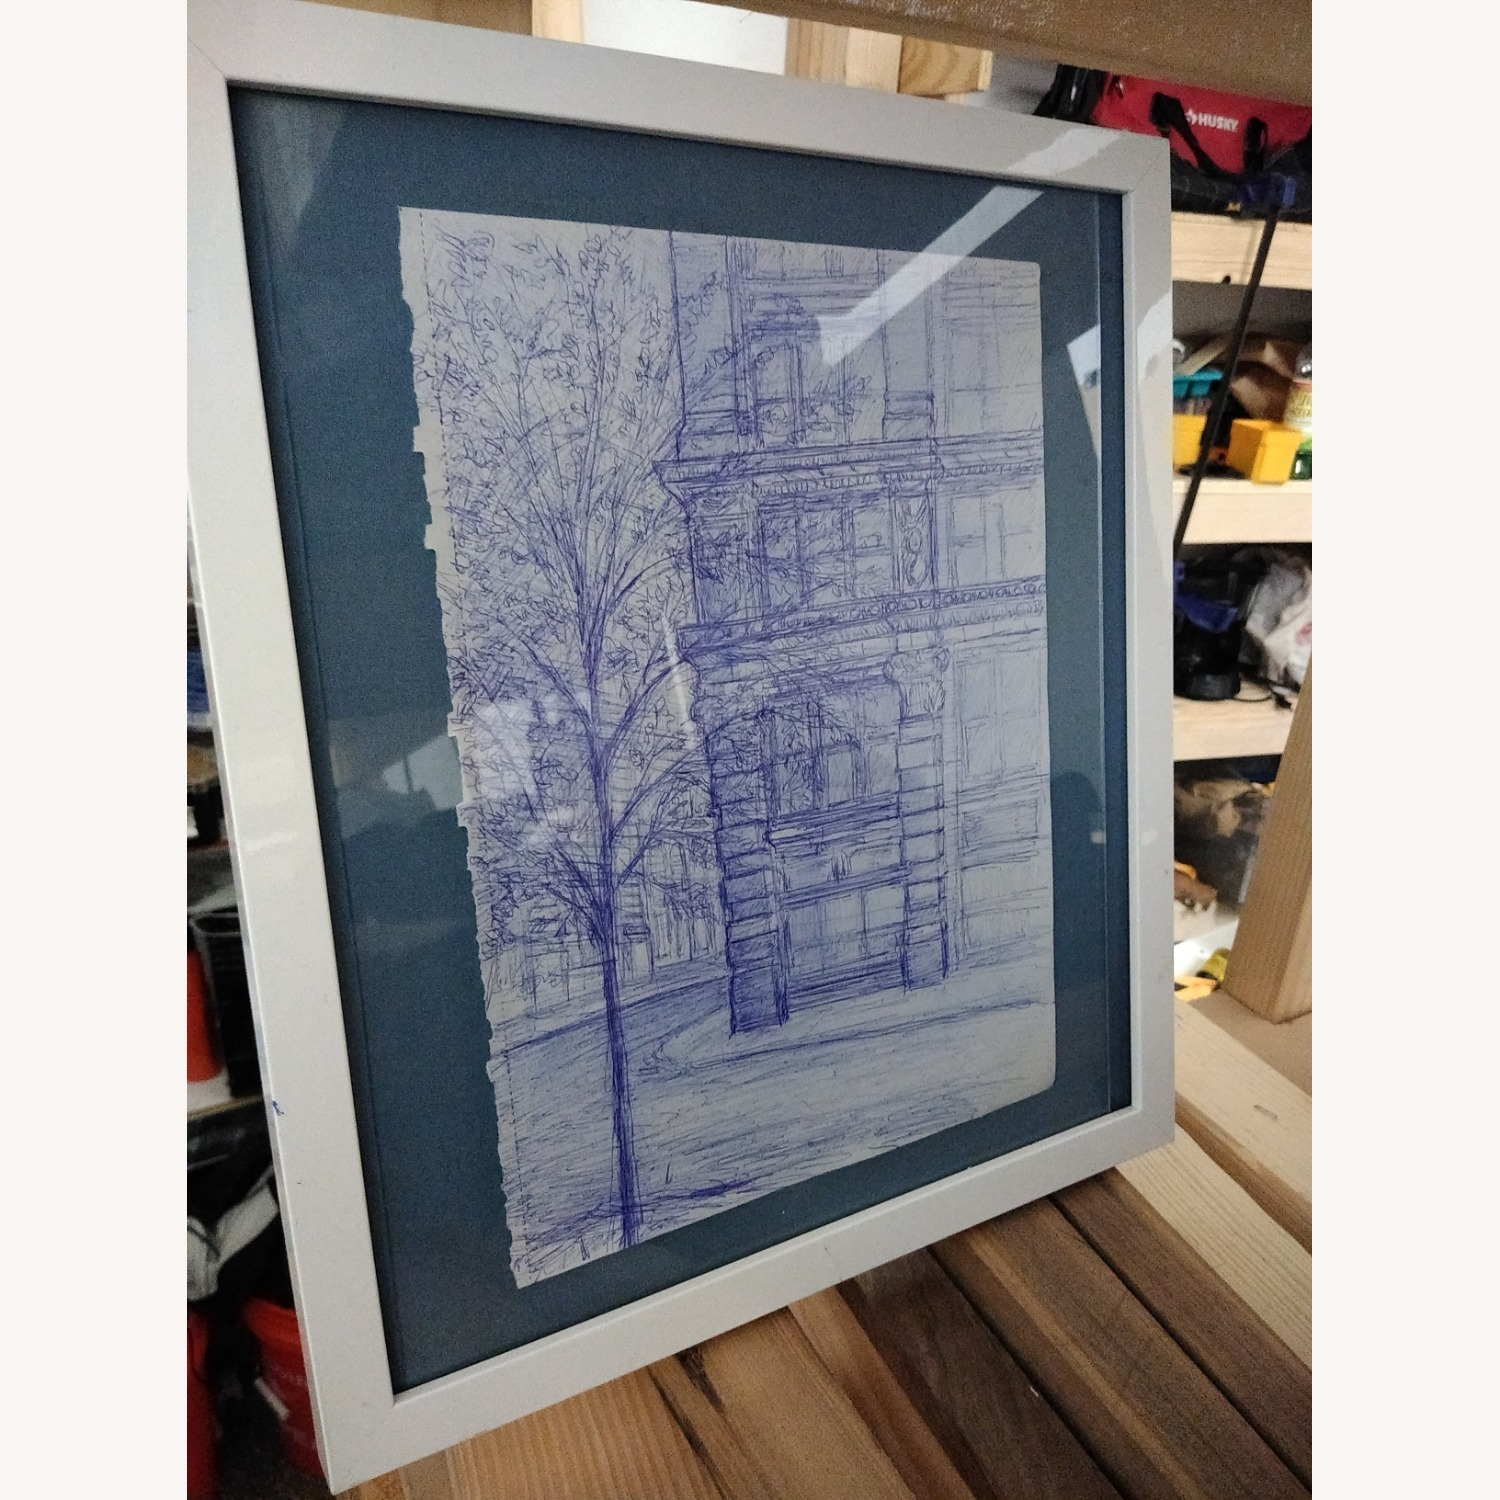 Drawing Restaurant Outdoor Dining View NY - image-13